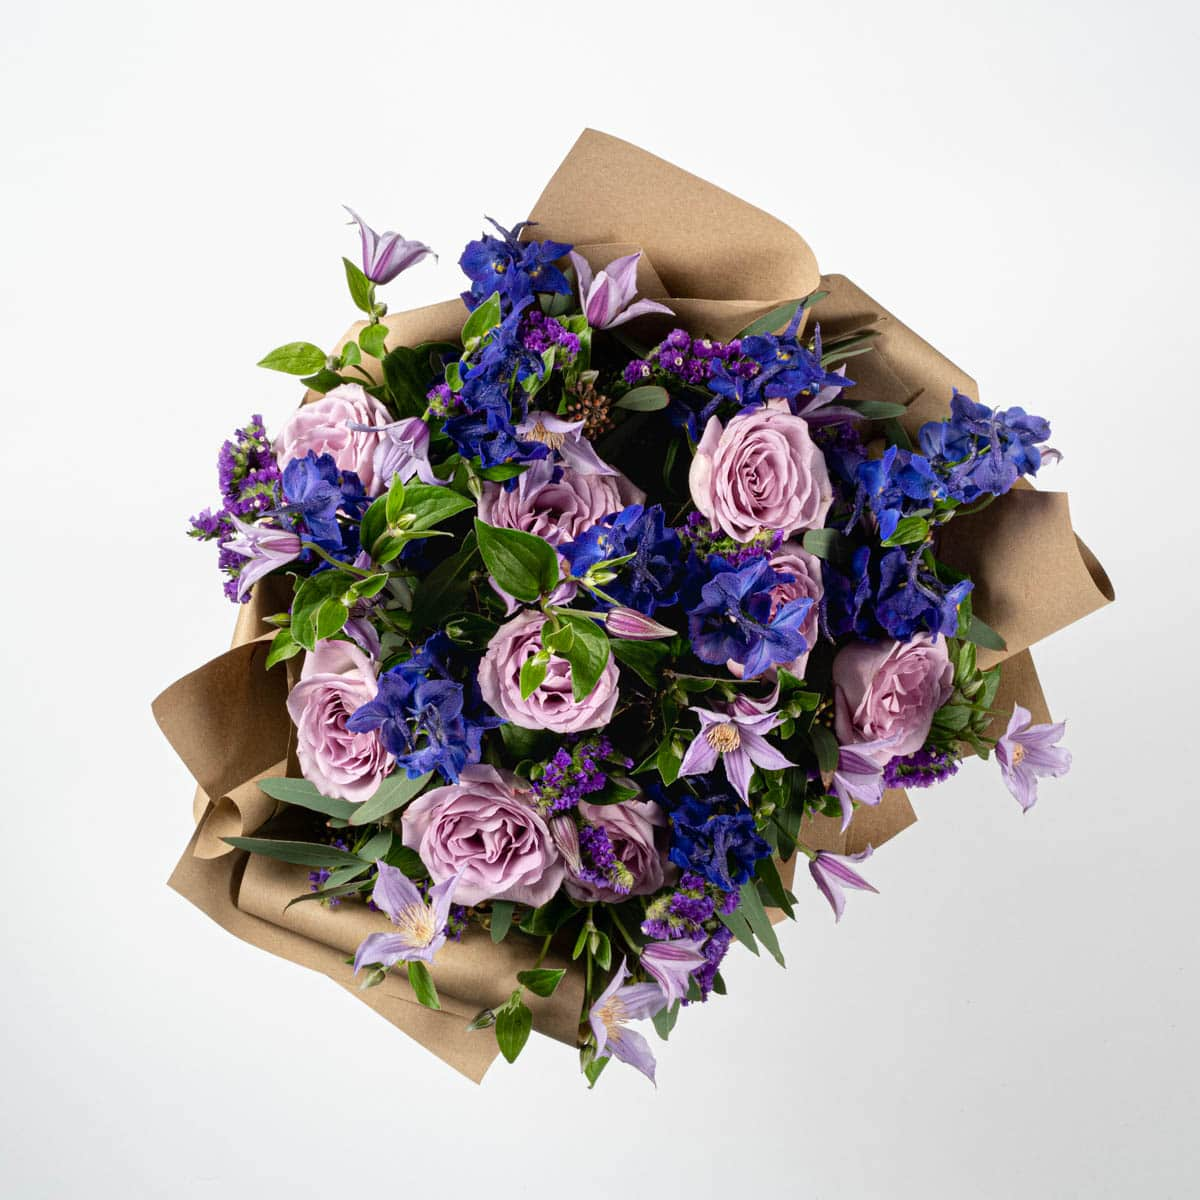 Bloom - Wild Garden Bouquet